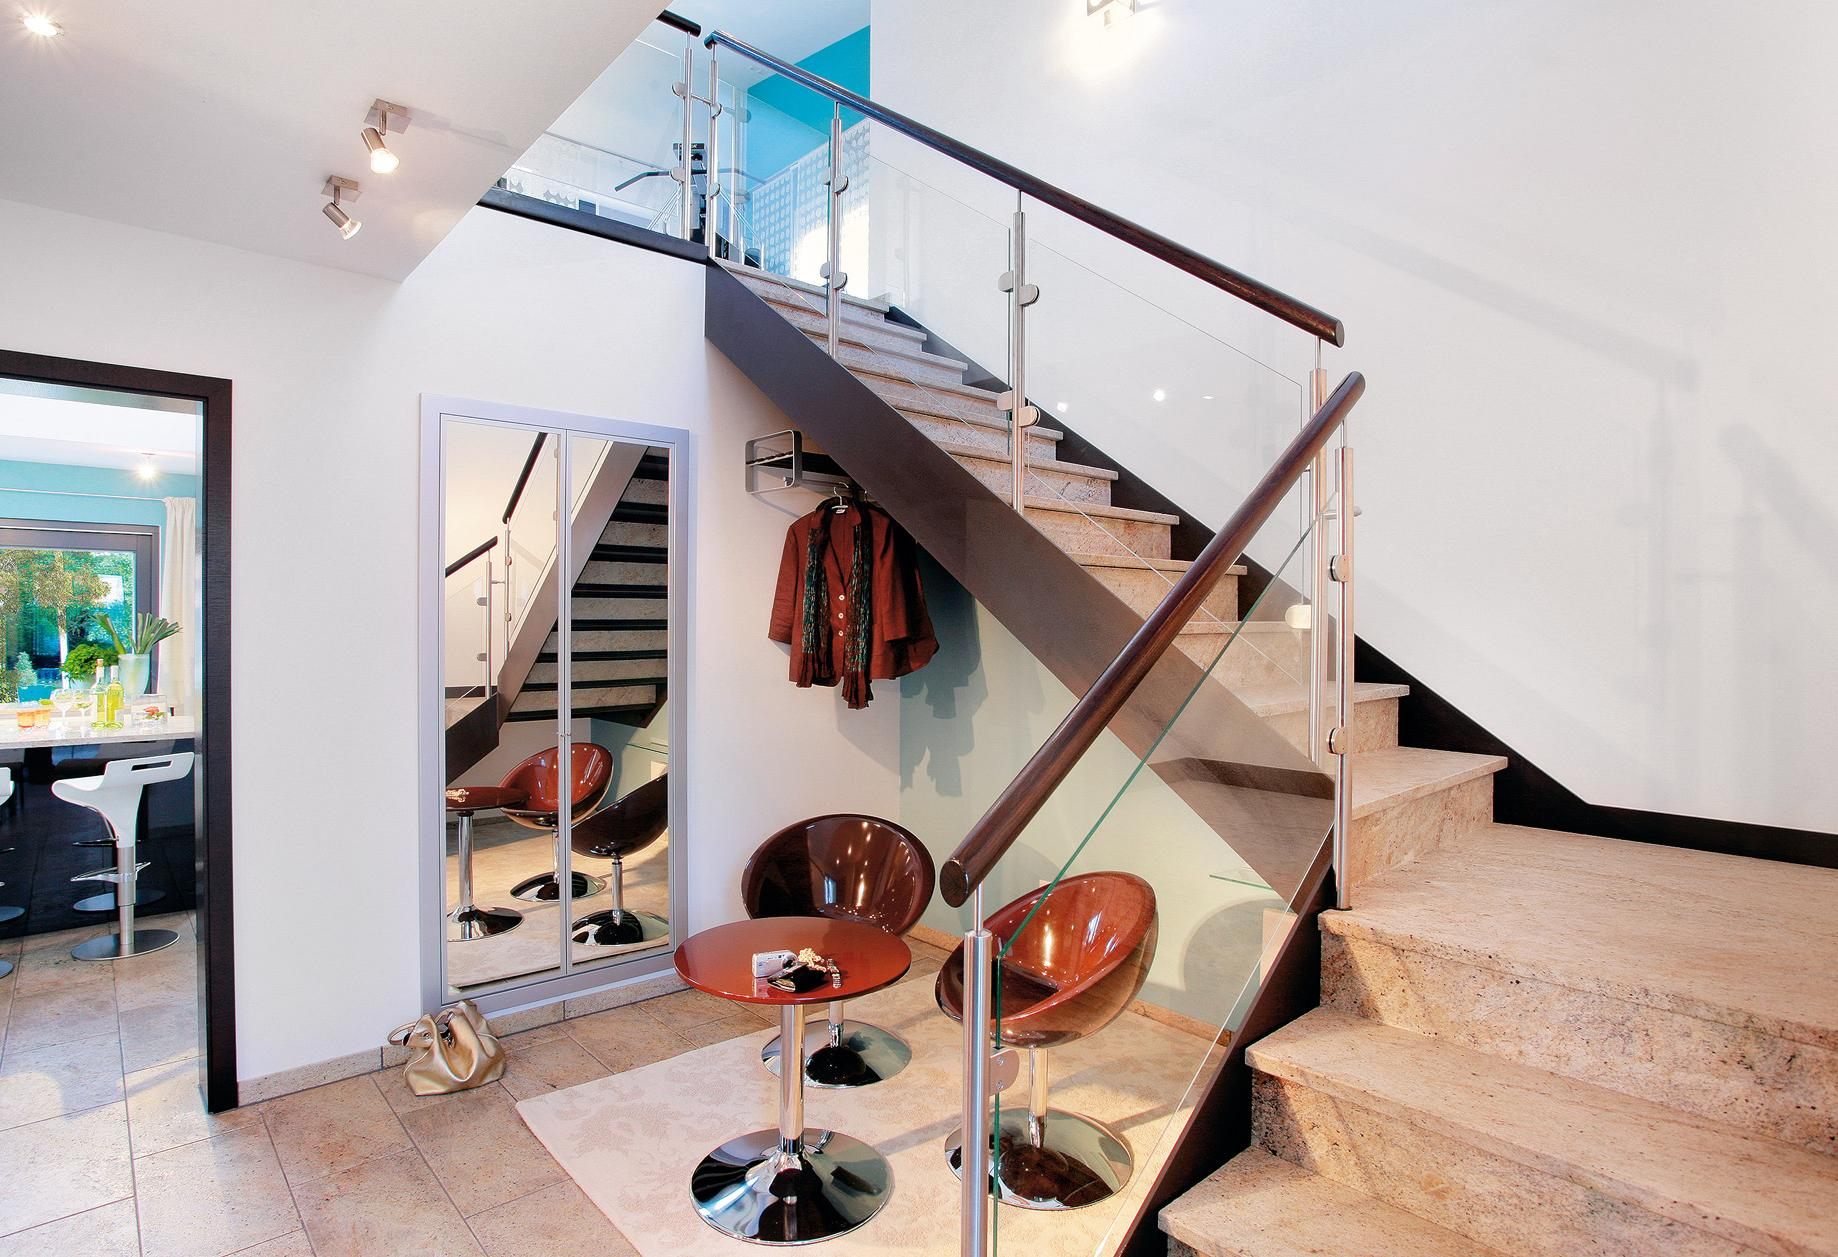 Spacious entrance with stone staircase